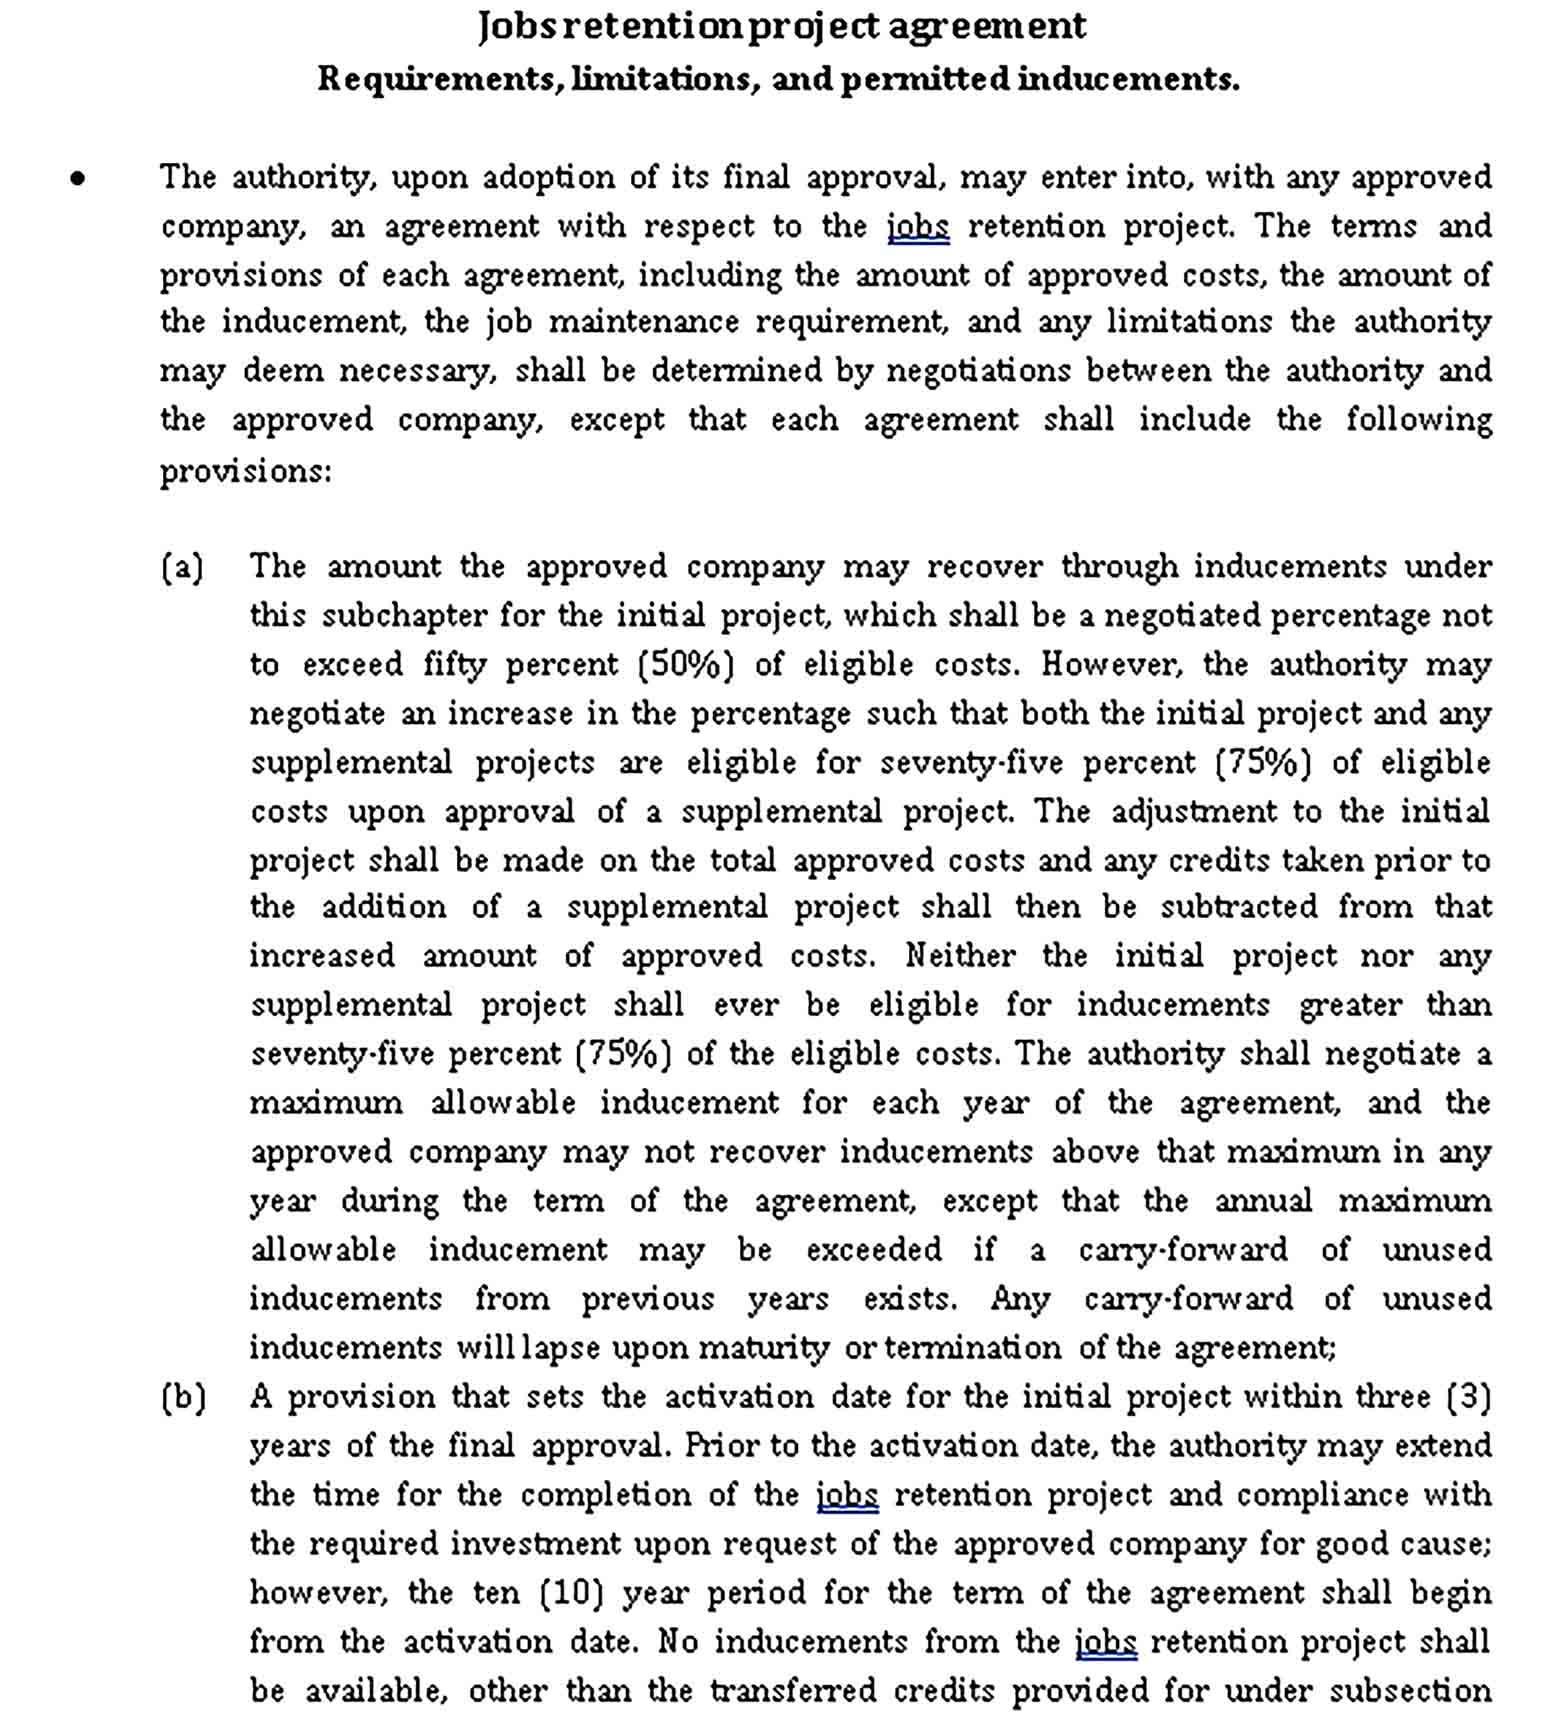 Templates Jobs retention project agreement Sample